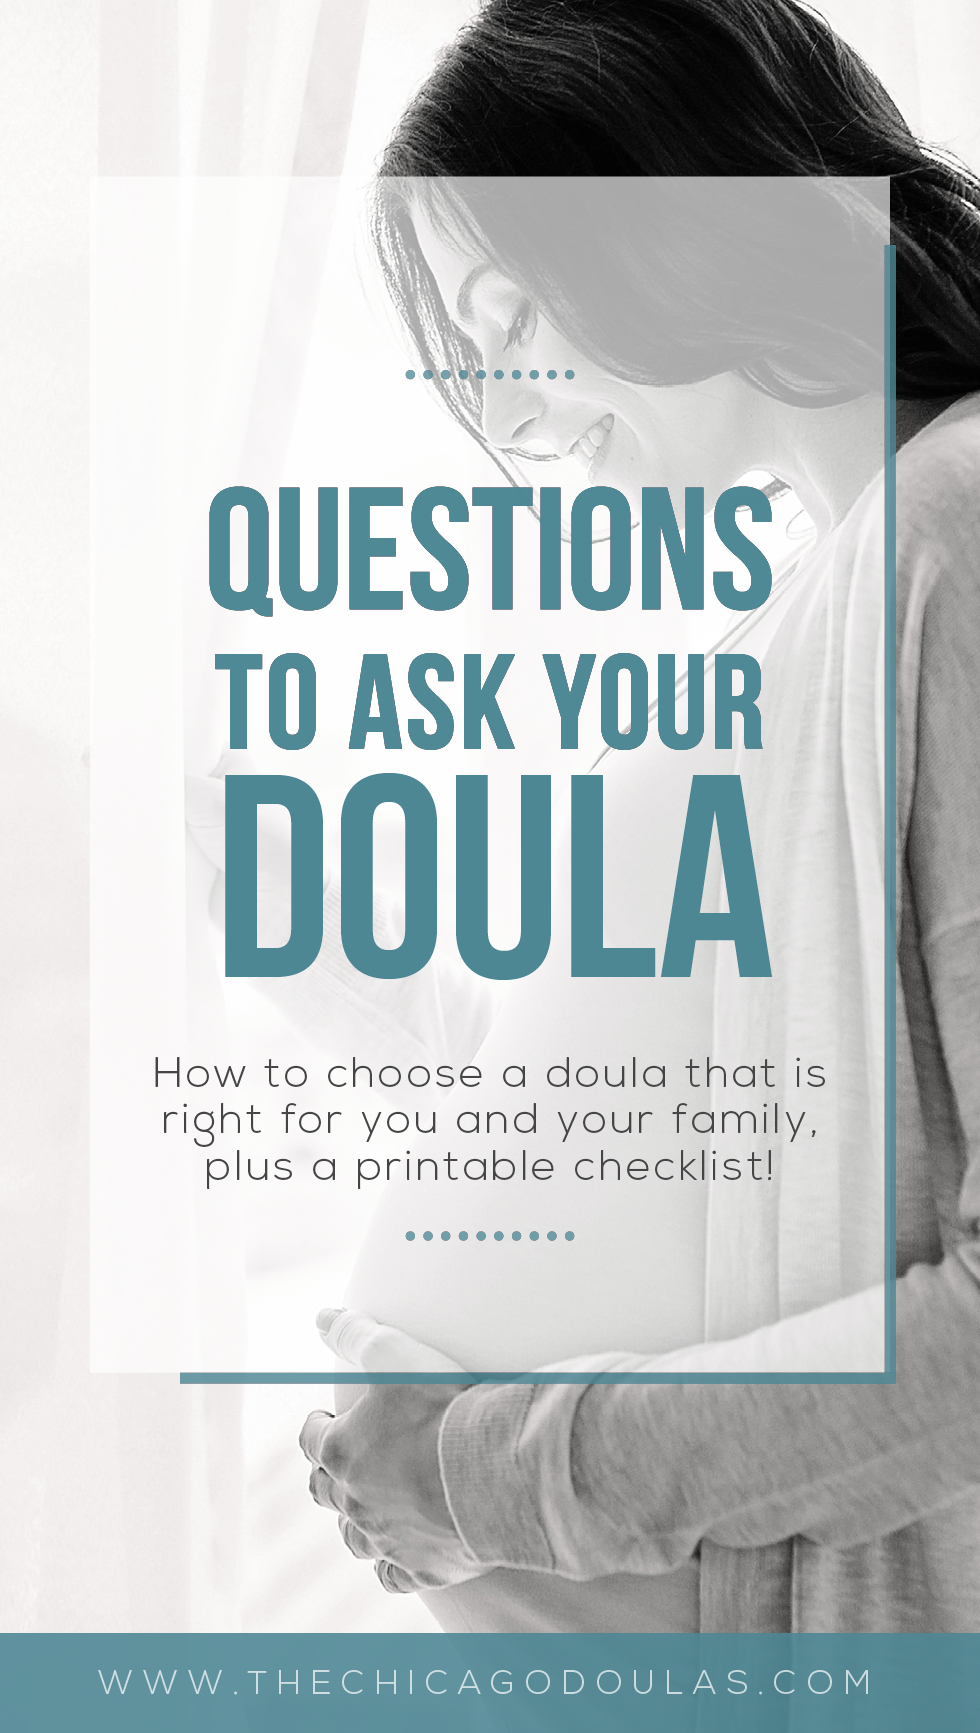 Questions to Ask Your Doula - The Chicago Doulas - Free Printable Checklist - Doula Interview